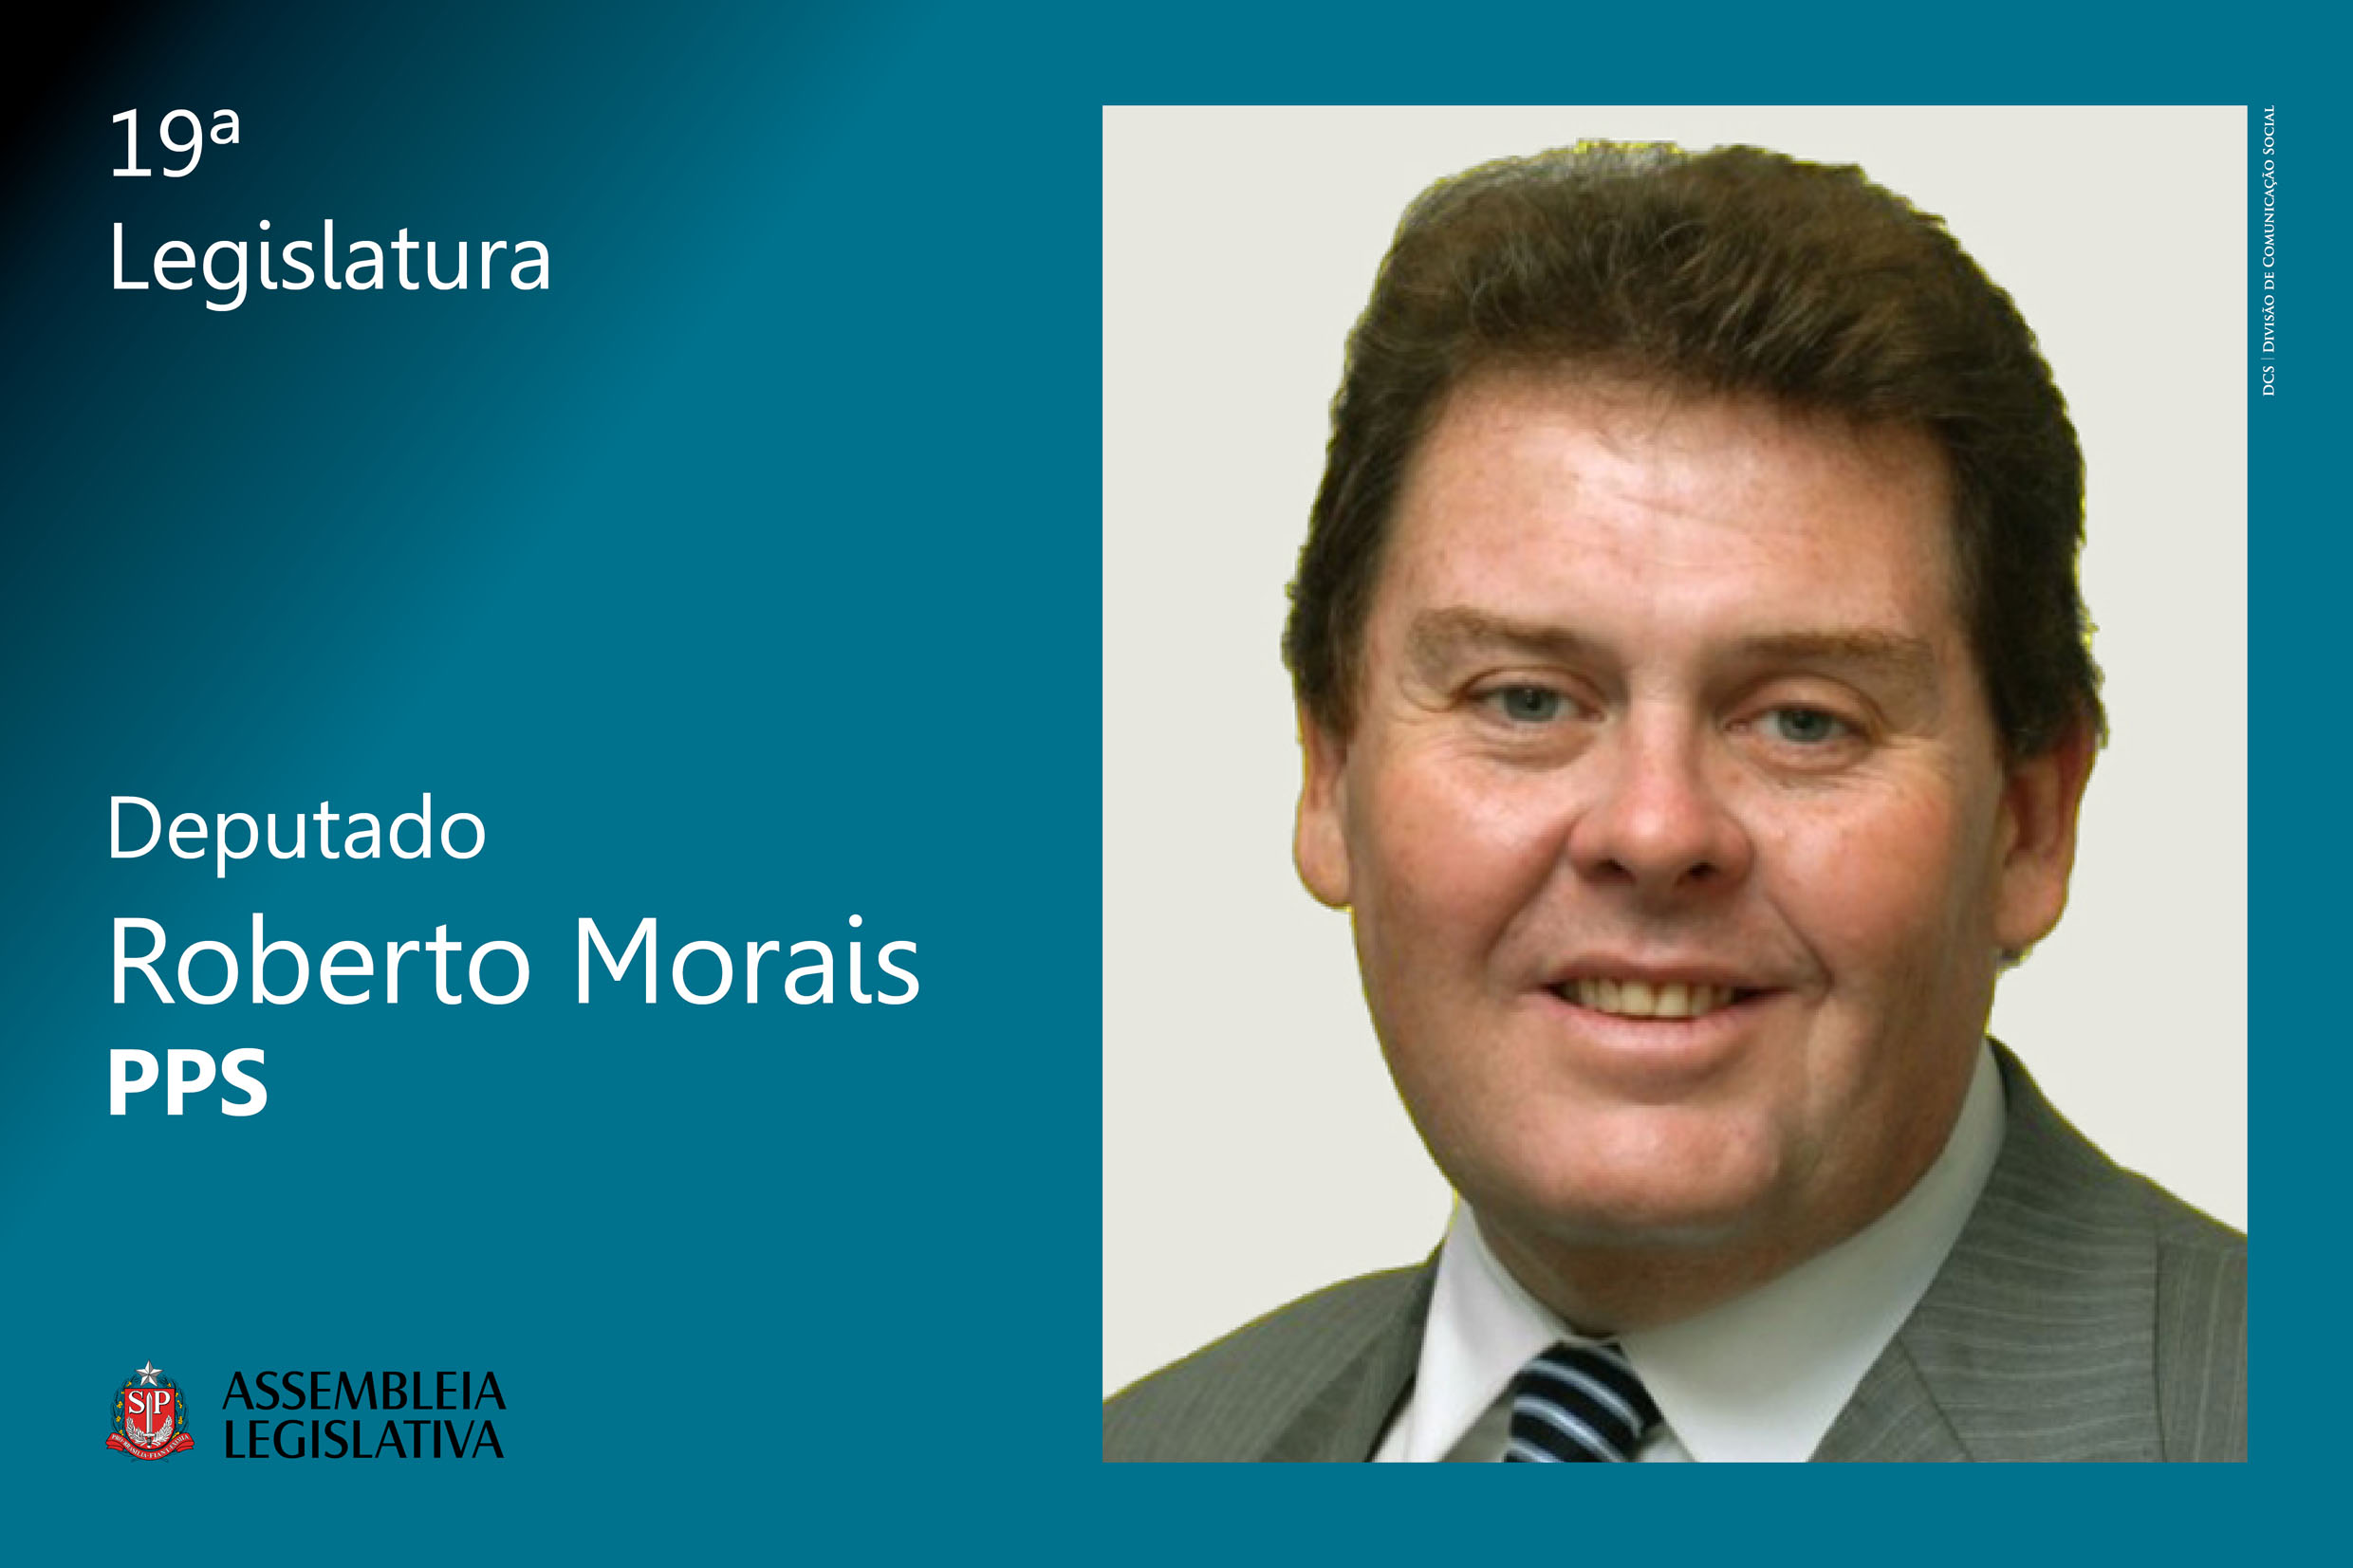 Roberto Morais (PPS)<a style='float:right' href='https://www3.al.sp.gov.br/repositorio/noticia/N-03-2019/fg231266.jpg' target=_blank><img src='/_img/material-file-download-white.png' width='14px' alt='Clique para baixar a imagem'></a>